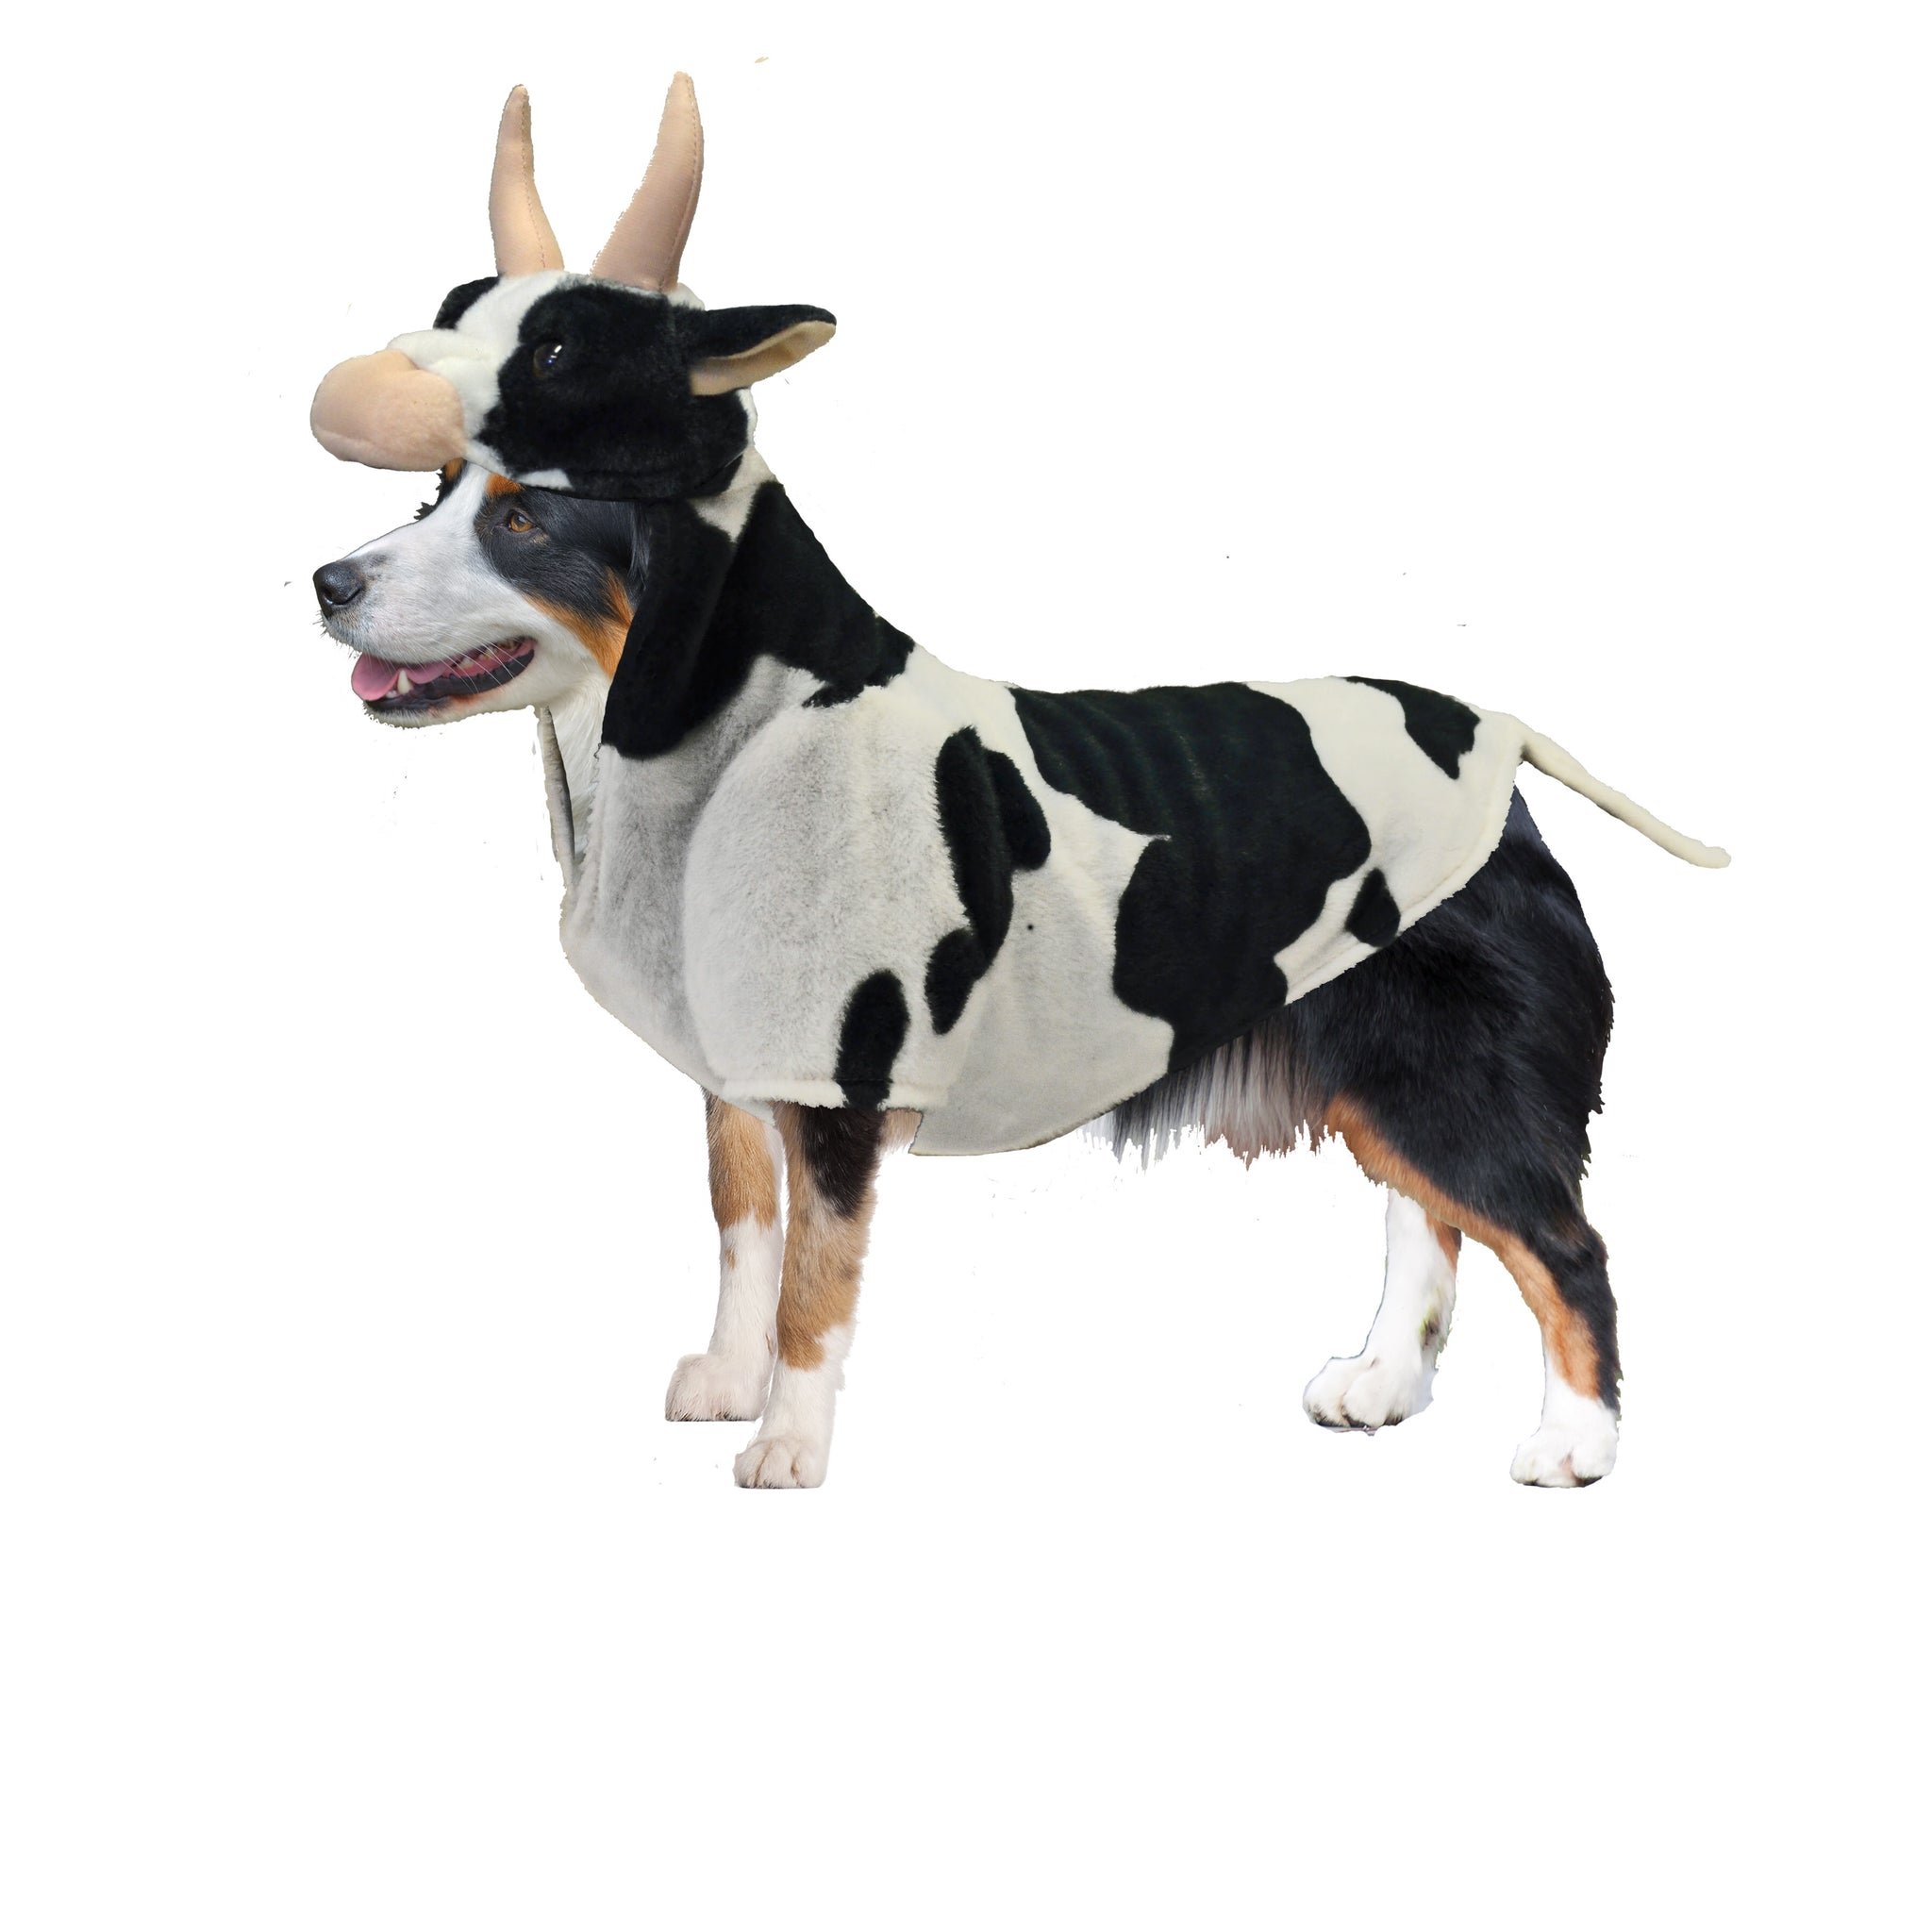 dog halloween costumes | barnyard cow costume – canine styles